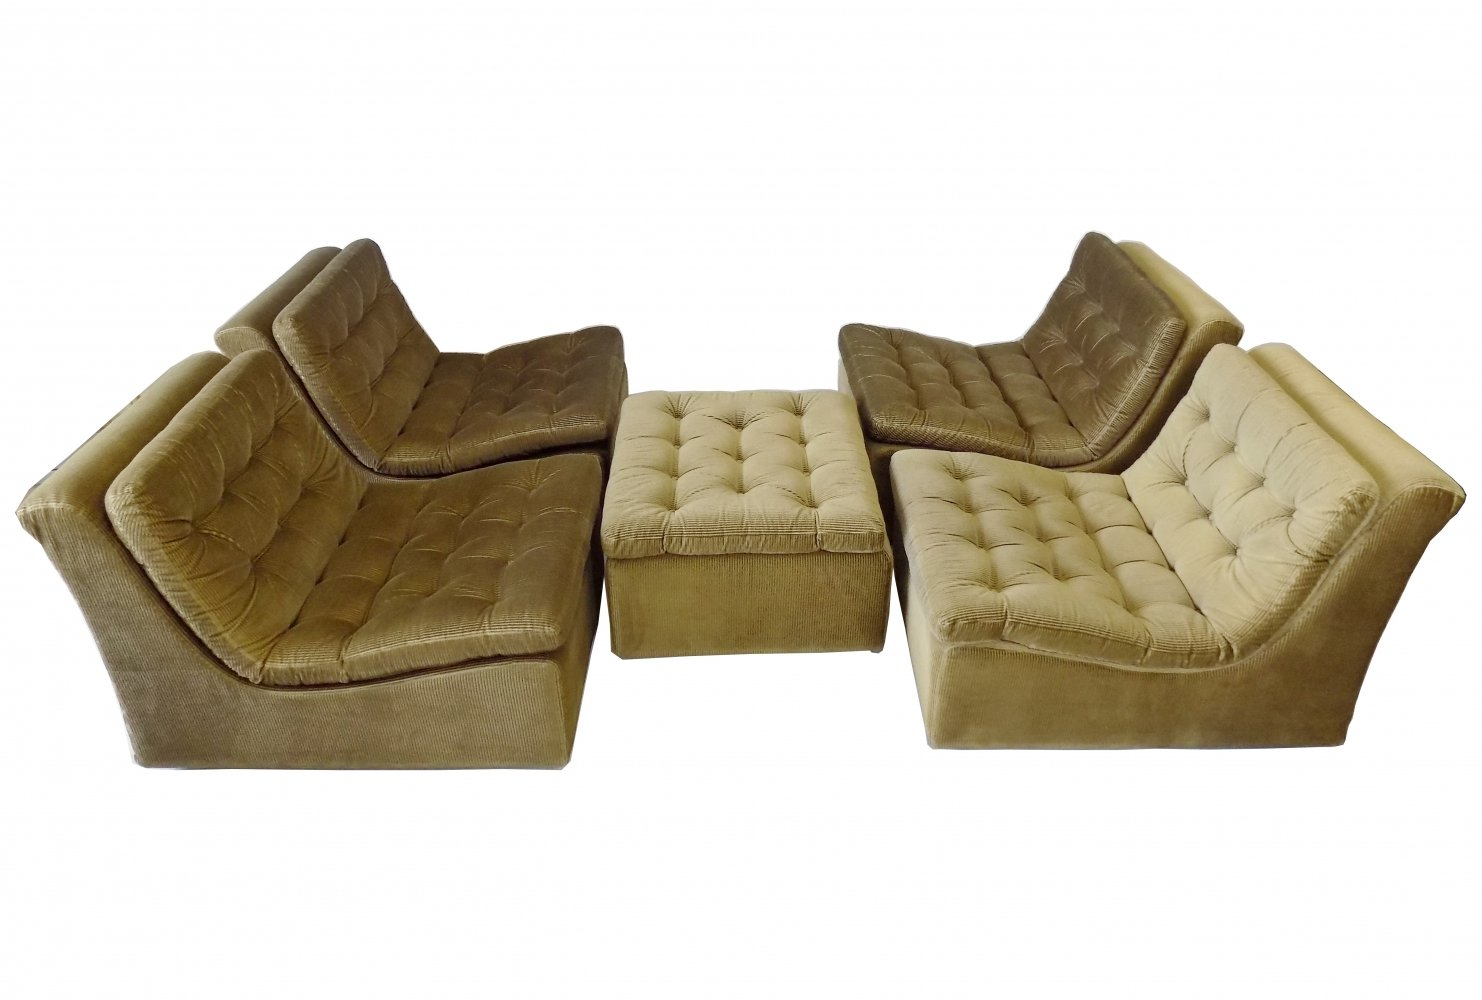 DUX reedgreen set of 4 loungechairs with ottoman